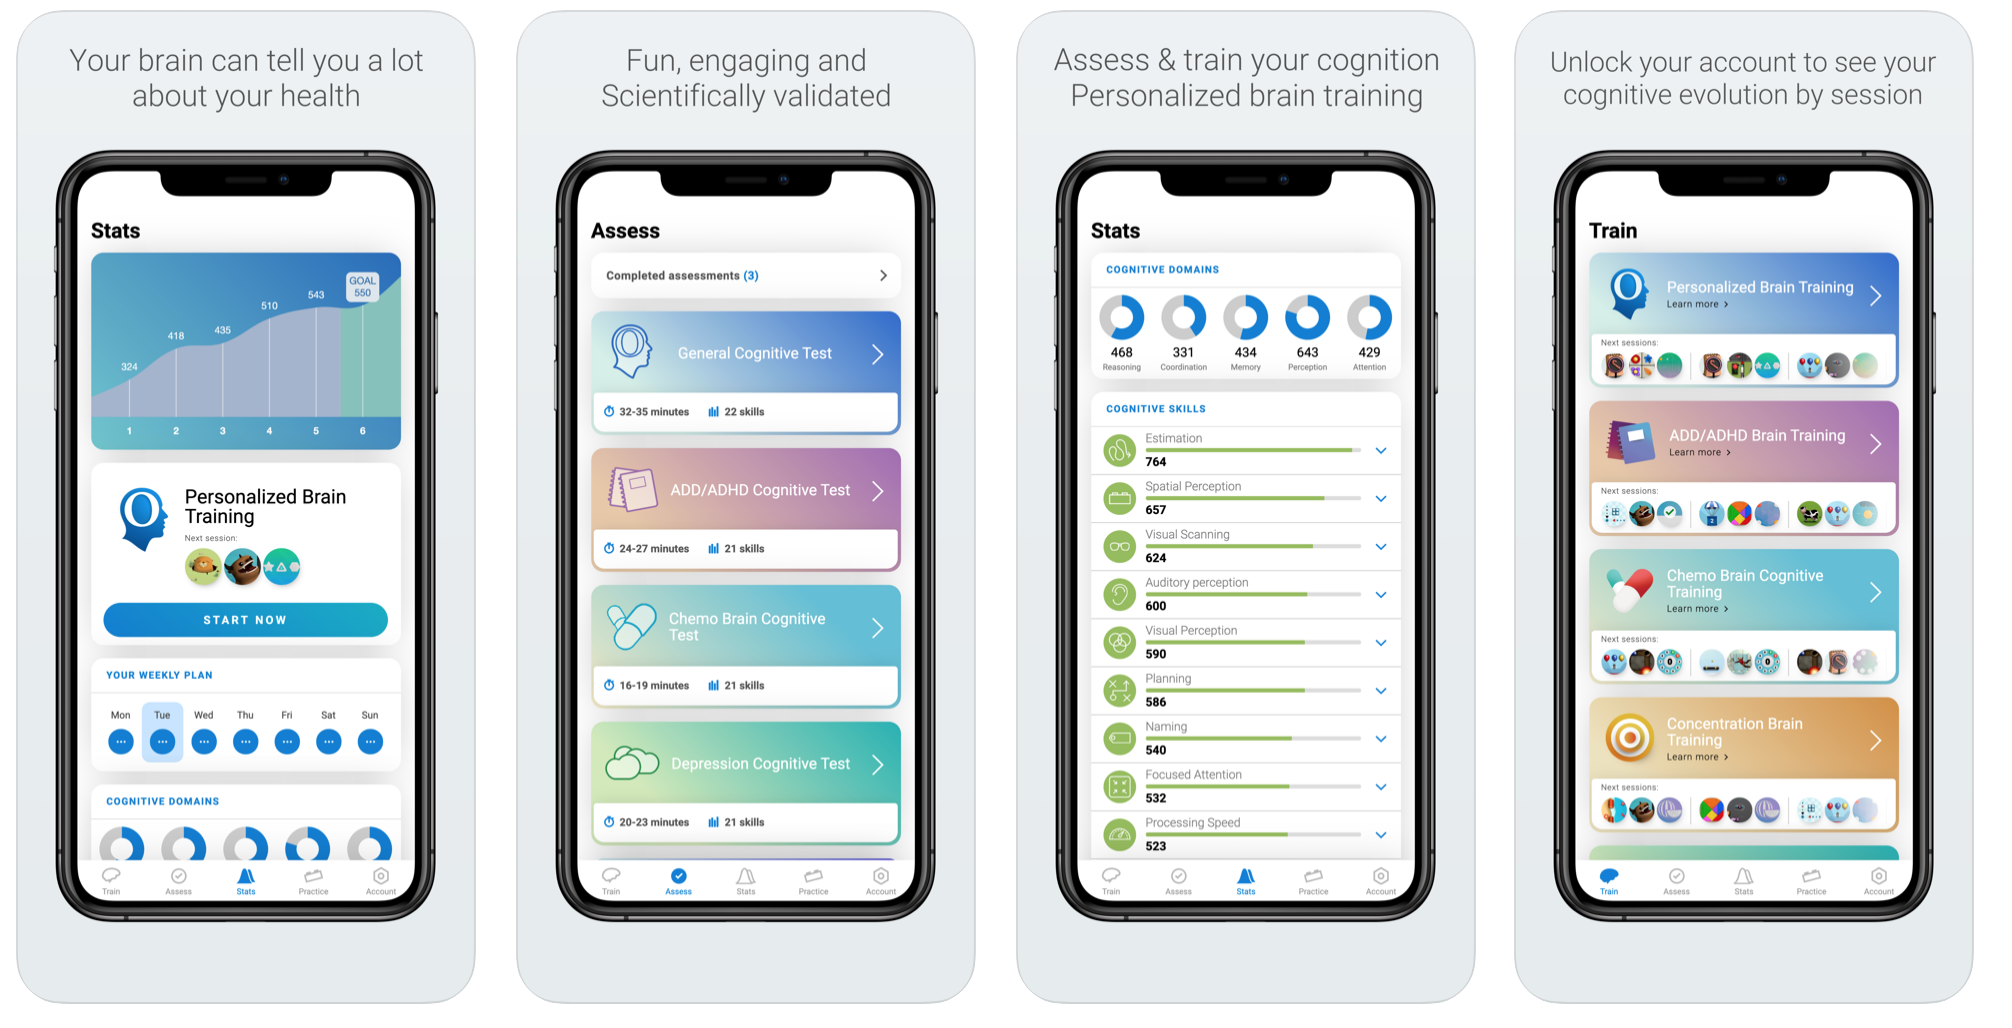 CogniFit 4.0: the new version of CogniFit's cognitive testing and training app